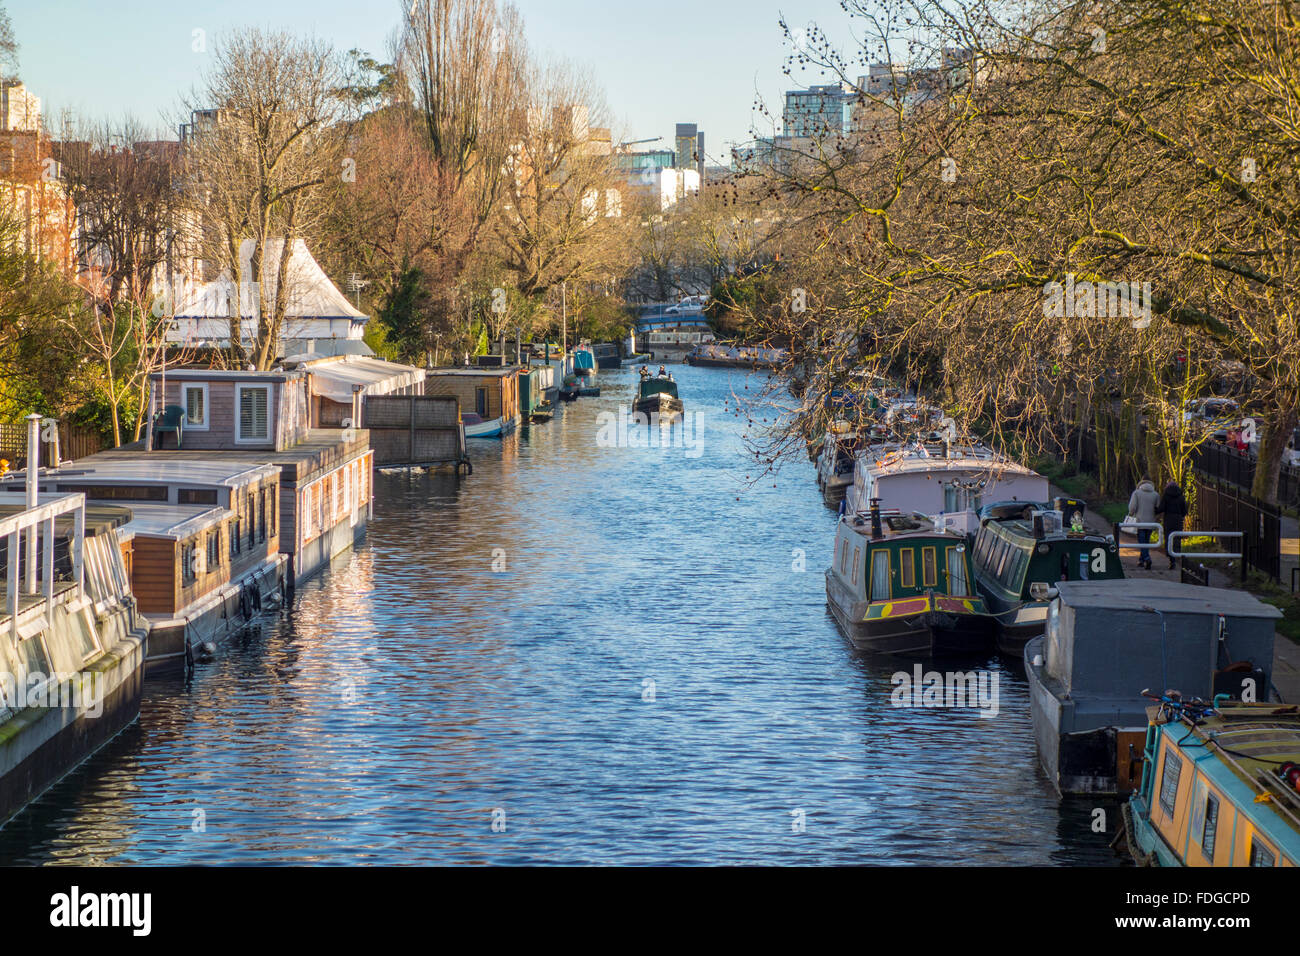 Grand Union Canal, Little Venice, Paddington, London, UK - Stock Image